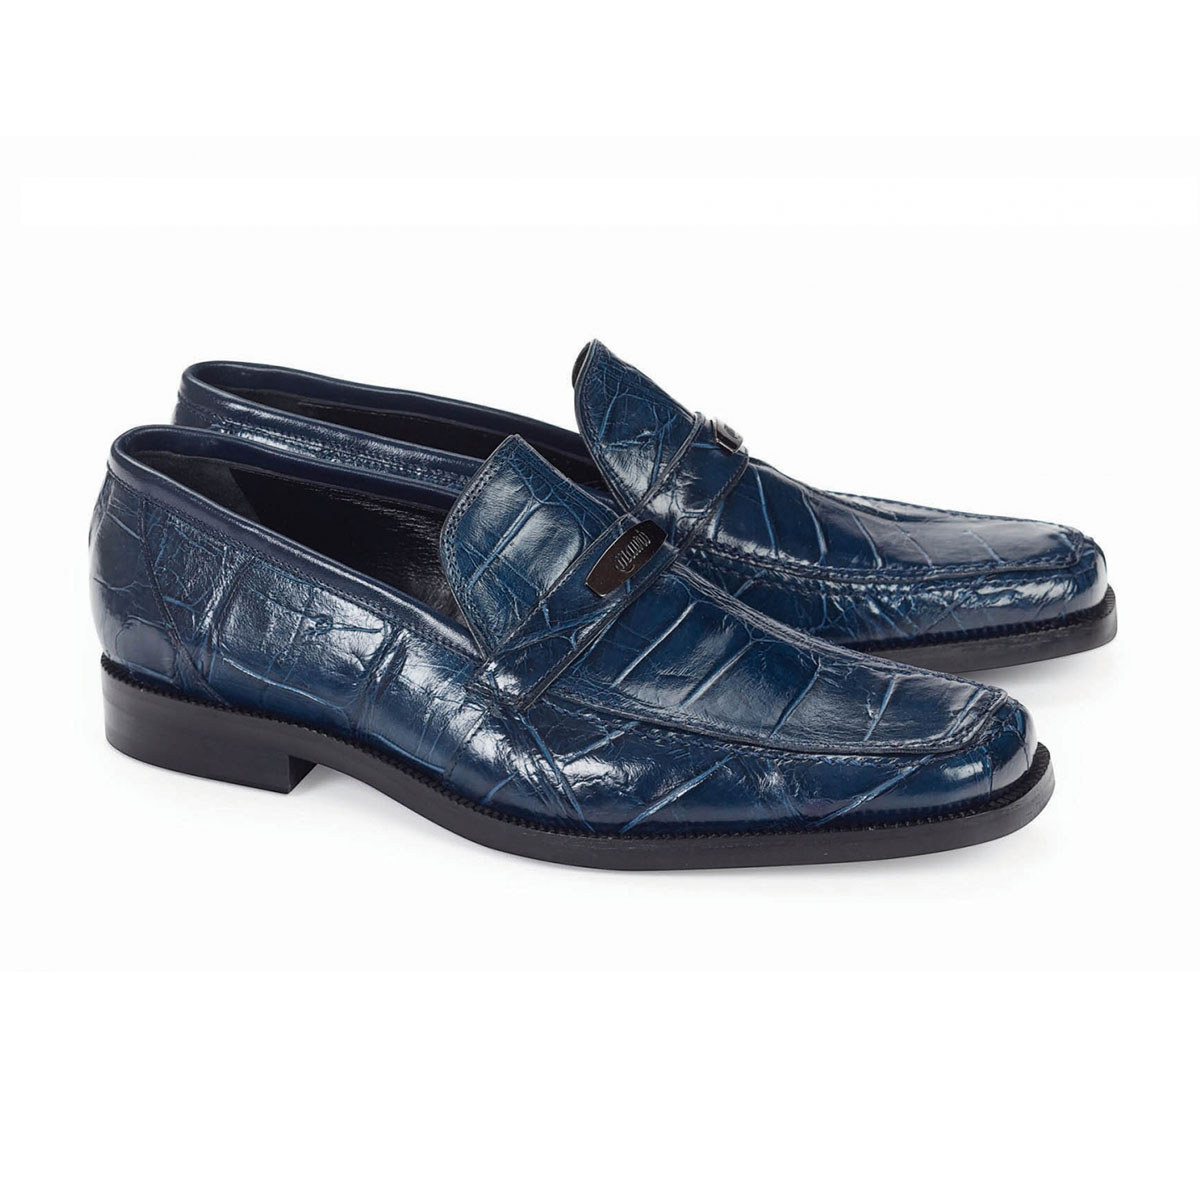 Fall 2018 Mauri Body Alligator Wonder Blue Loafer 9692-3